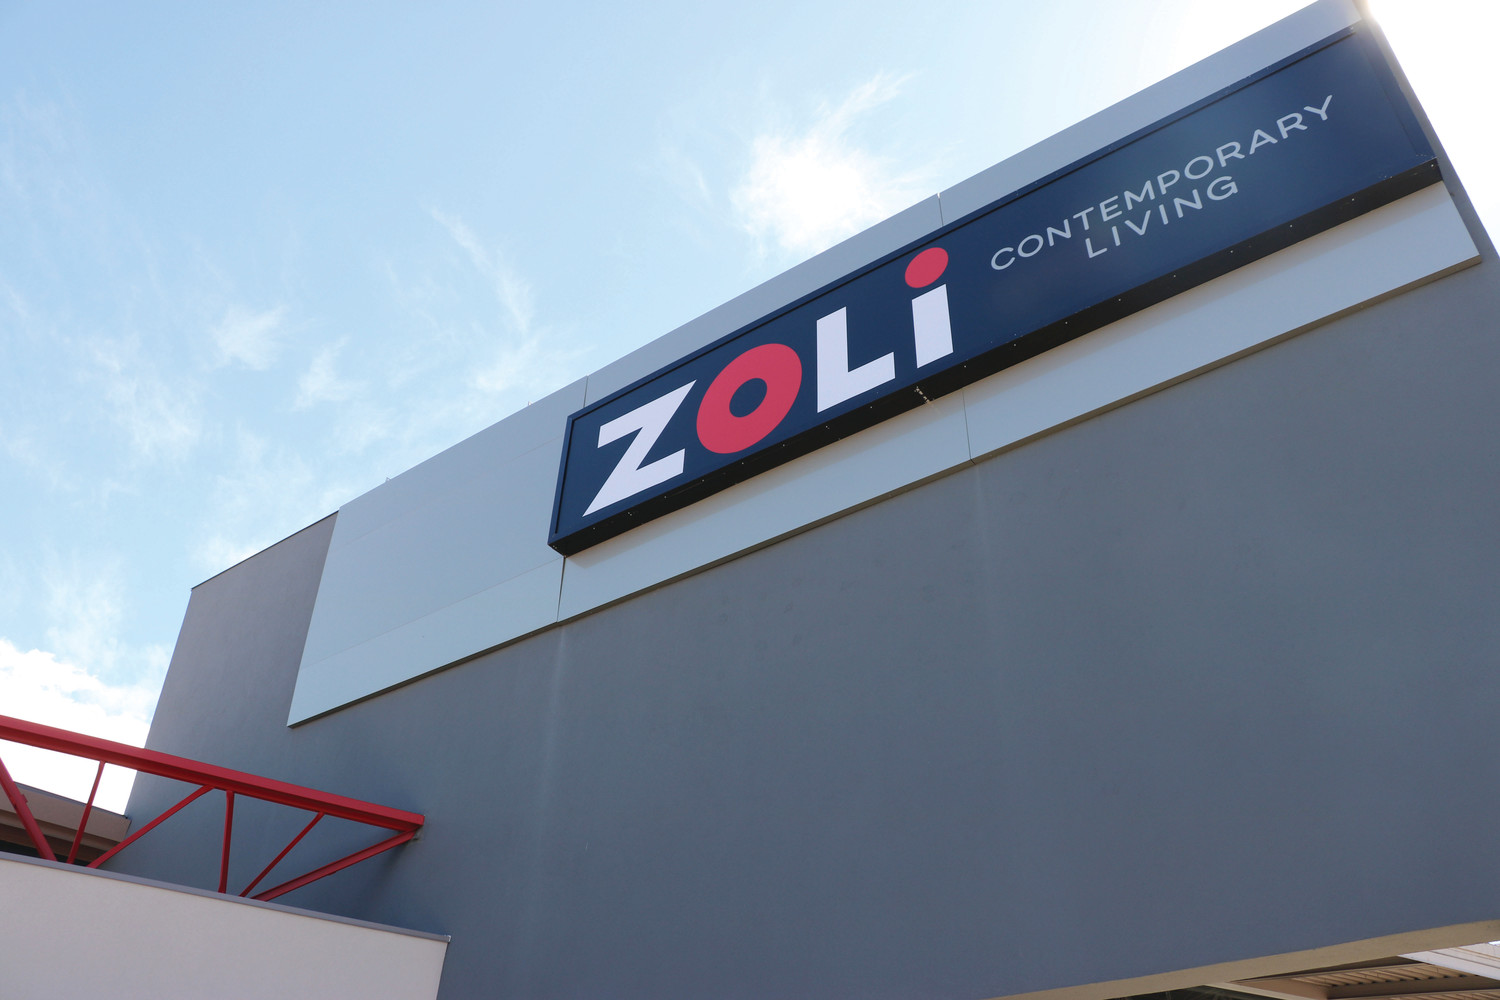 A family-owned furniture store on the corner of County Line Road and Colorado Boulevard got a new name in early September. Danish Design International, which had a Roche Bobois showroom, is now ZOLi Contemporary Living.